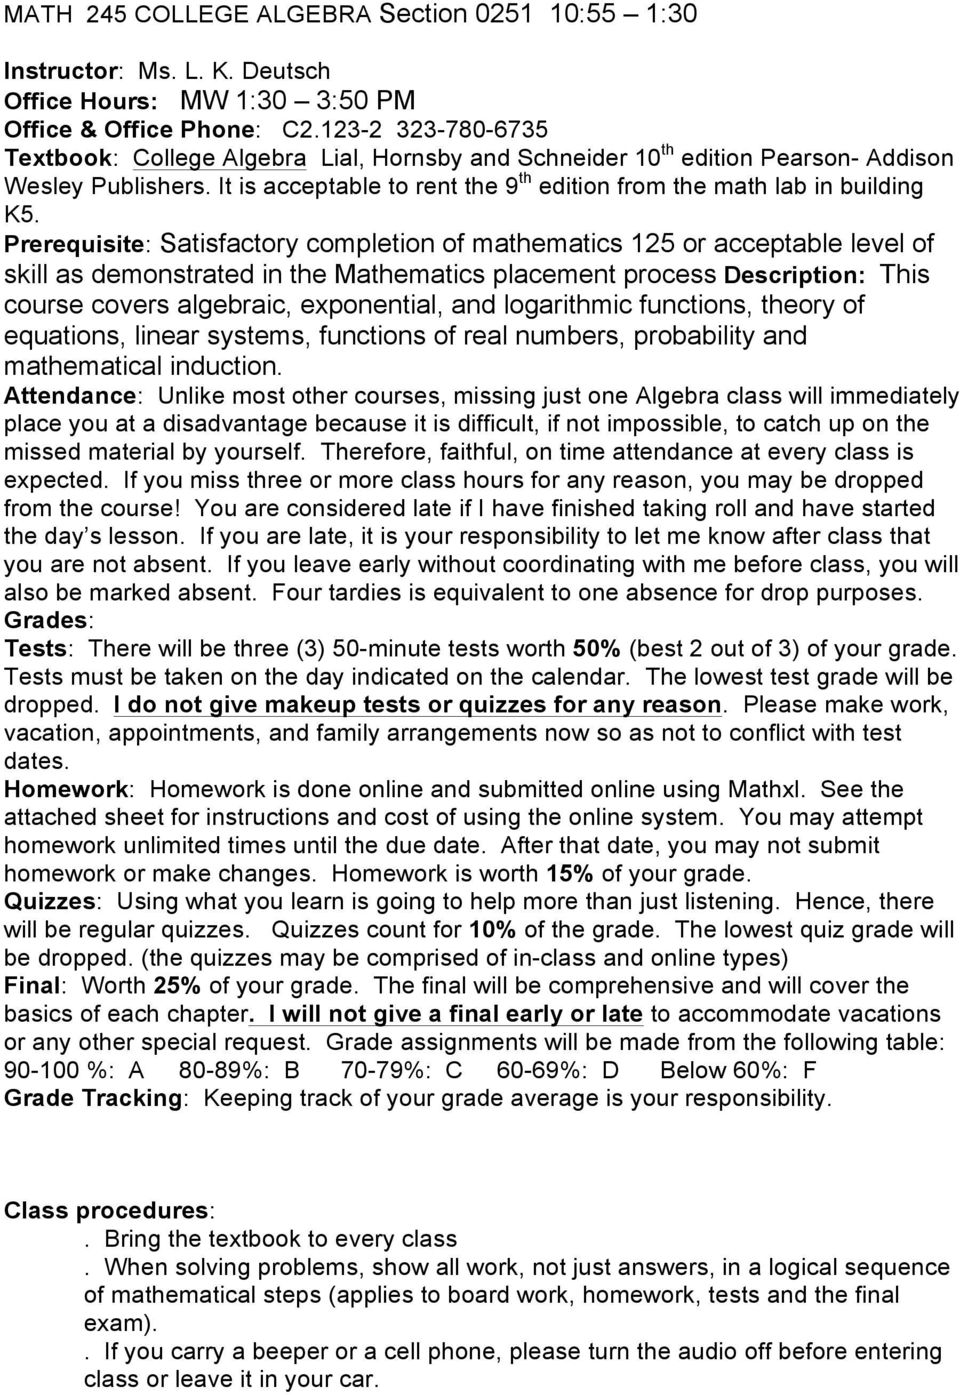 Prerequisite: Satisfactory completion of mathematics 125 or acceptable level of skill as demonstrated in the Mathematics placement process Description: This course covers algebraic, exponential, and